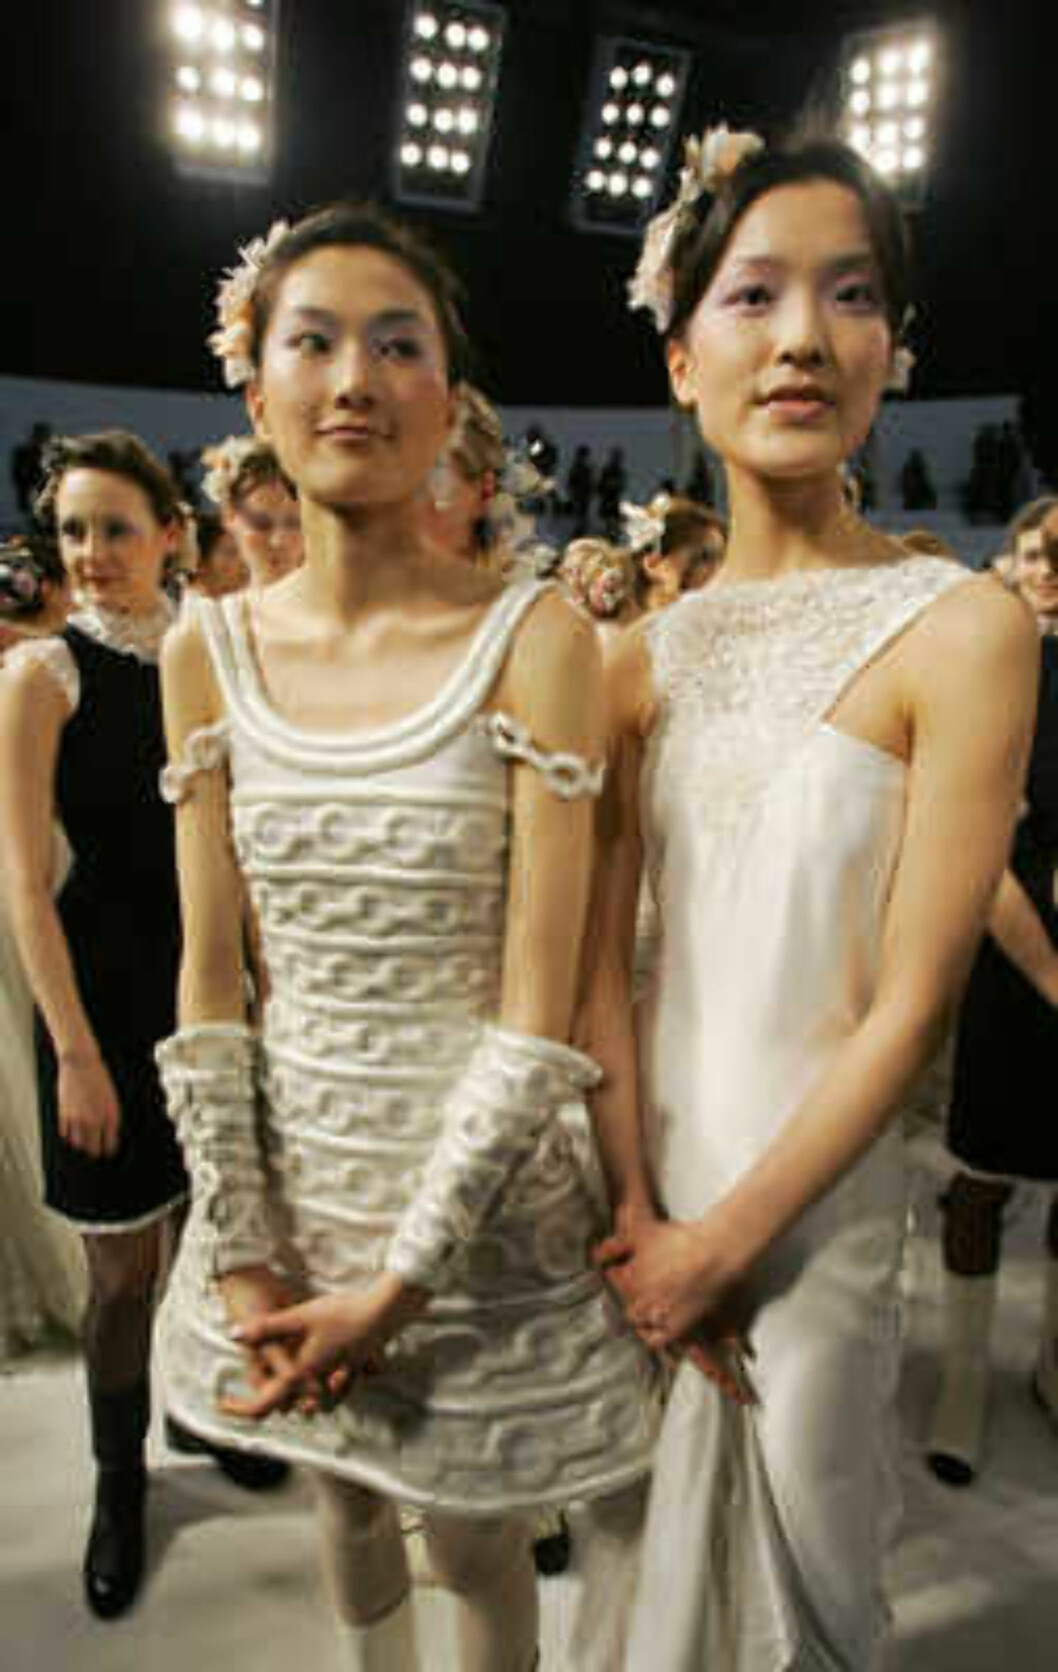 Models present the creations of the German designer Karl Lagerfeld after the Chanel 2006 Spring-Summer Haute Couture fashion show in Hong Kong Friday, March 24, 2006.  (AP Photo/Kin Cheung) Foto: AP